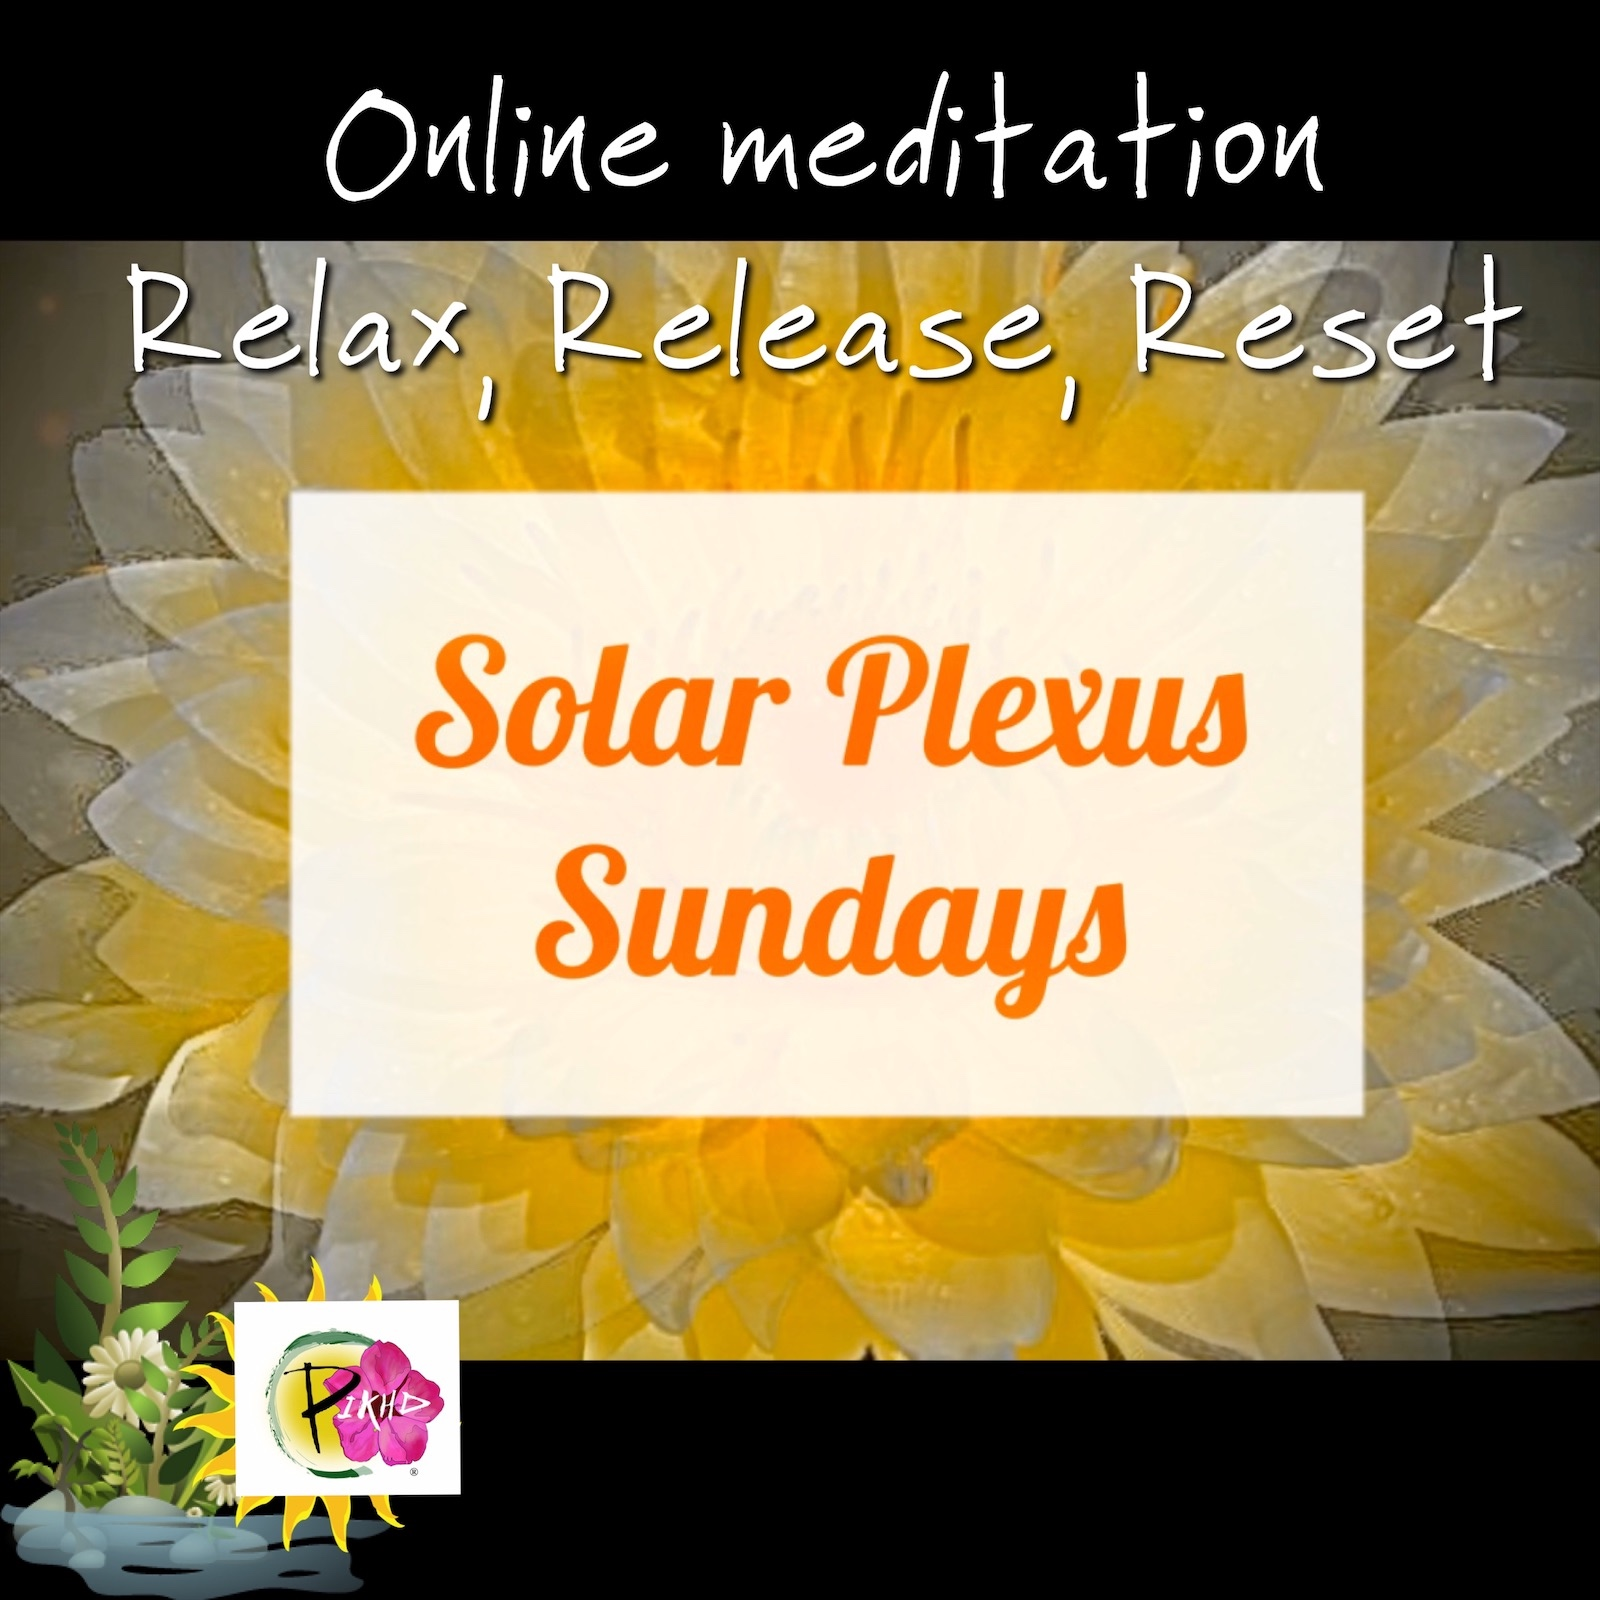 Solar Plexus Sundays May10